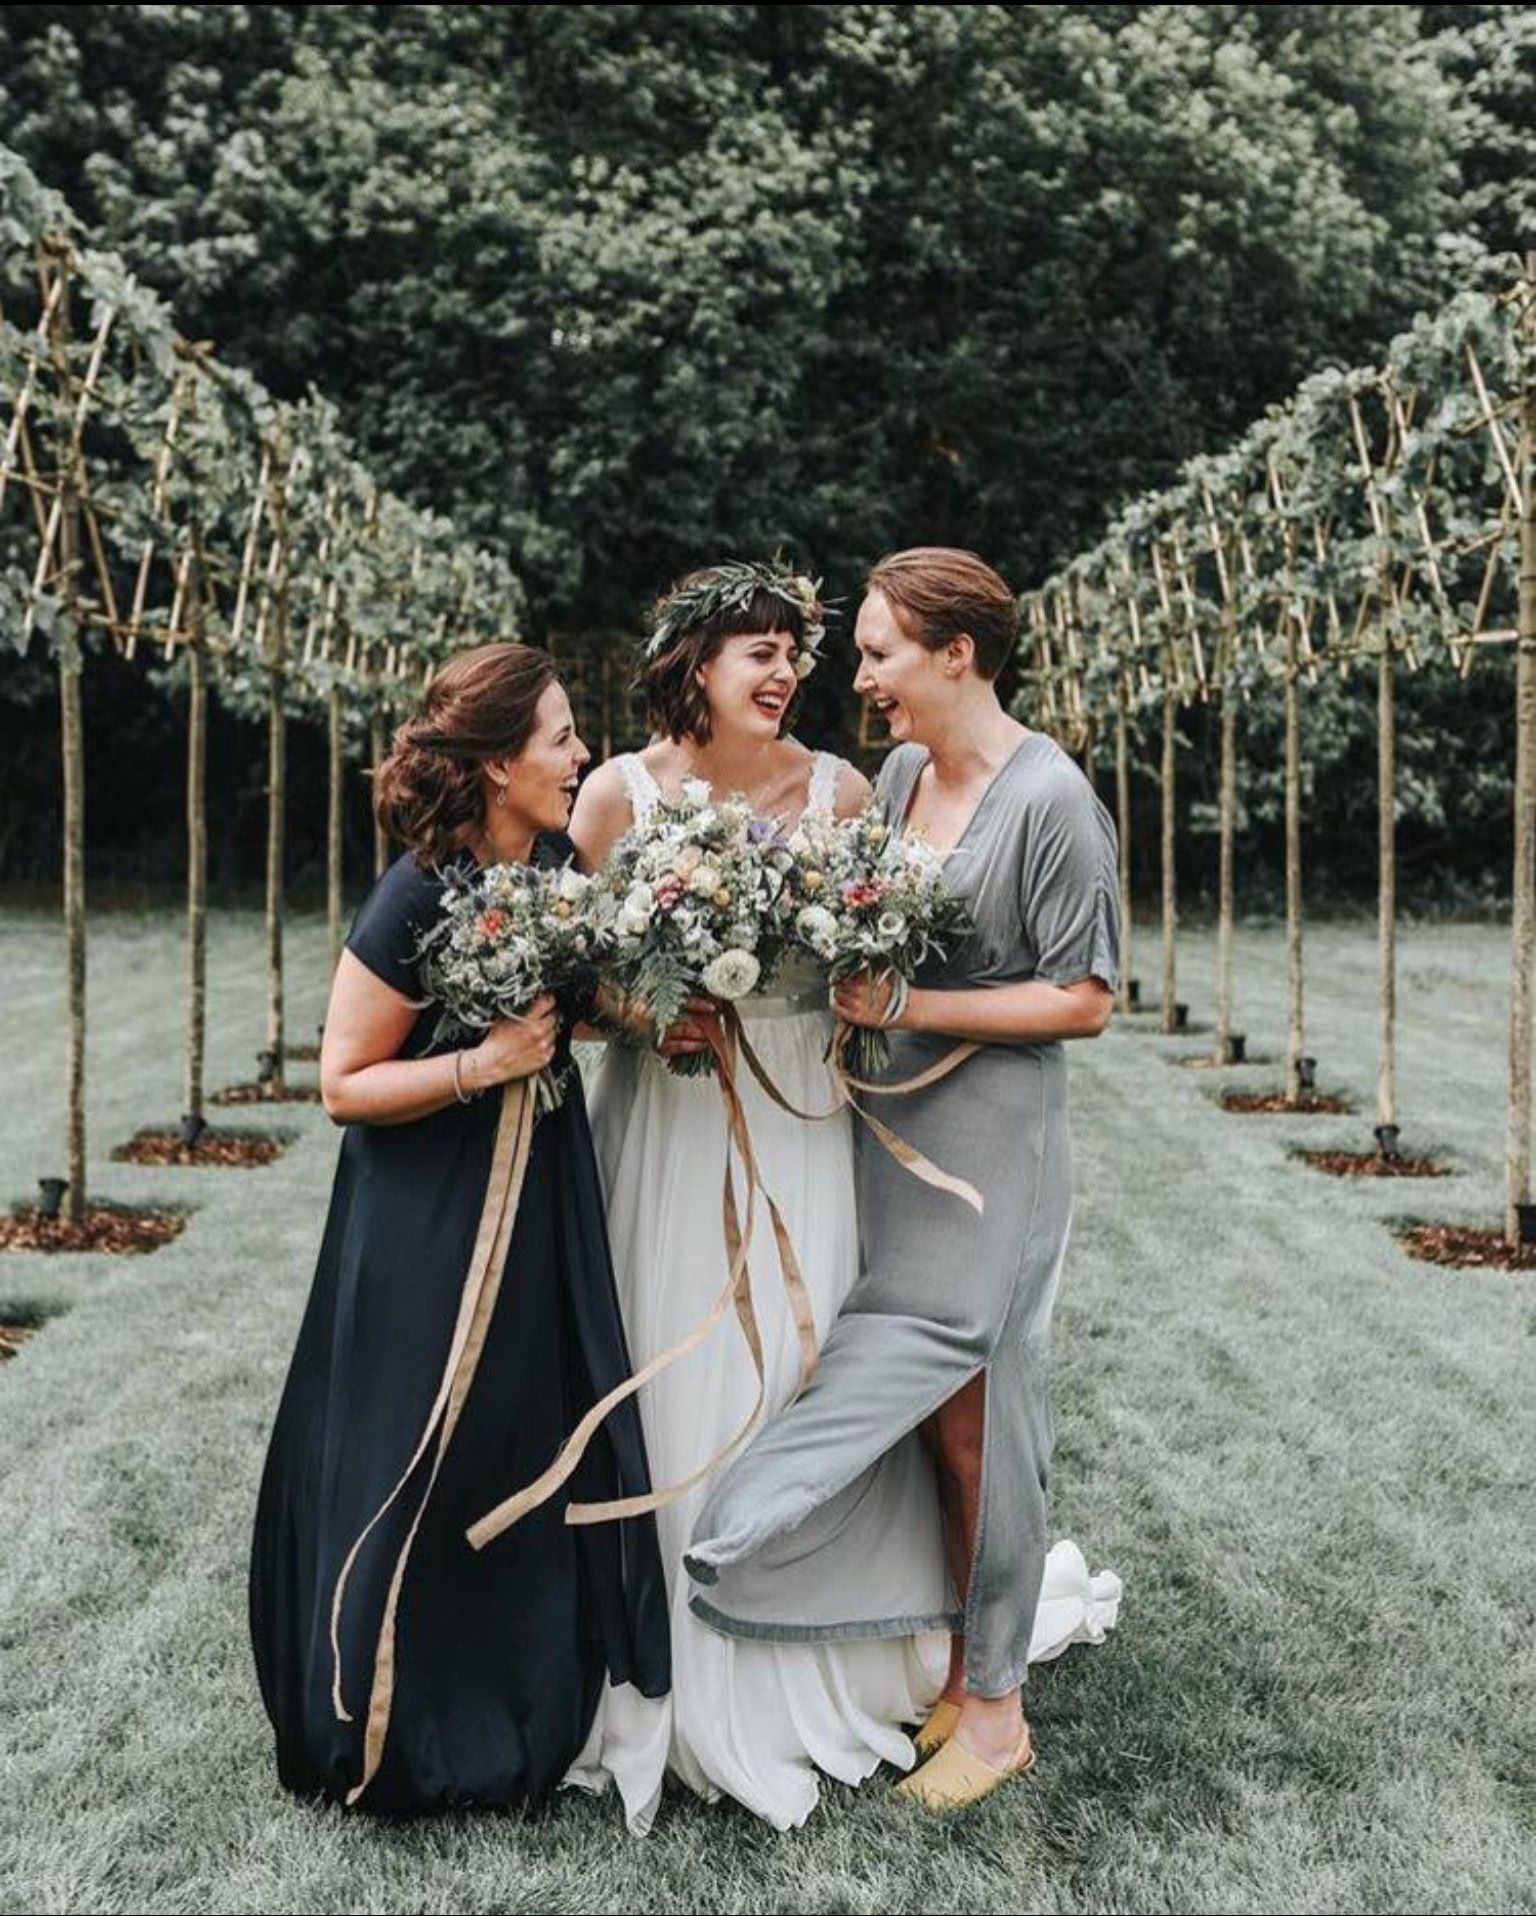 Ceremony And Reception Gap: Pin By Shade Bridal On 2017 Bridal Fashion (With Images